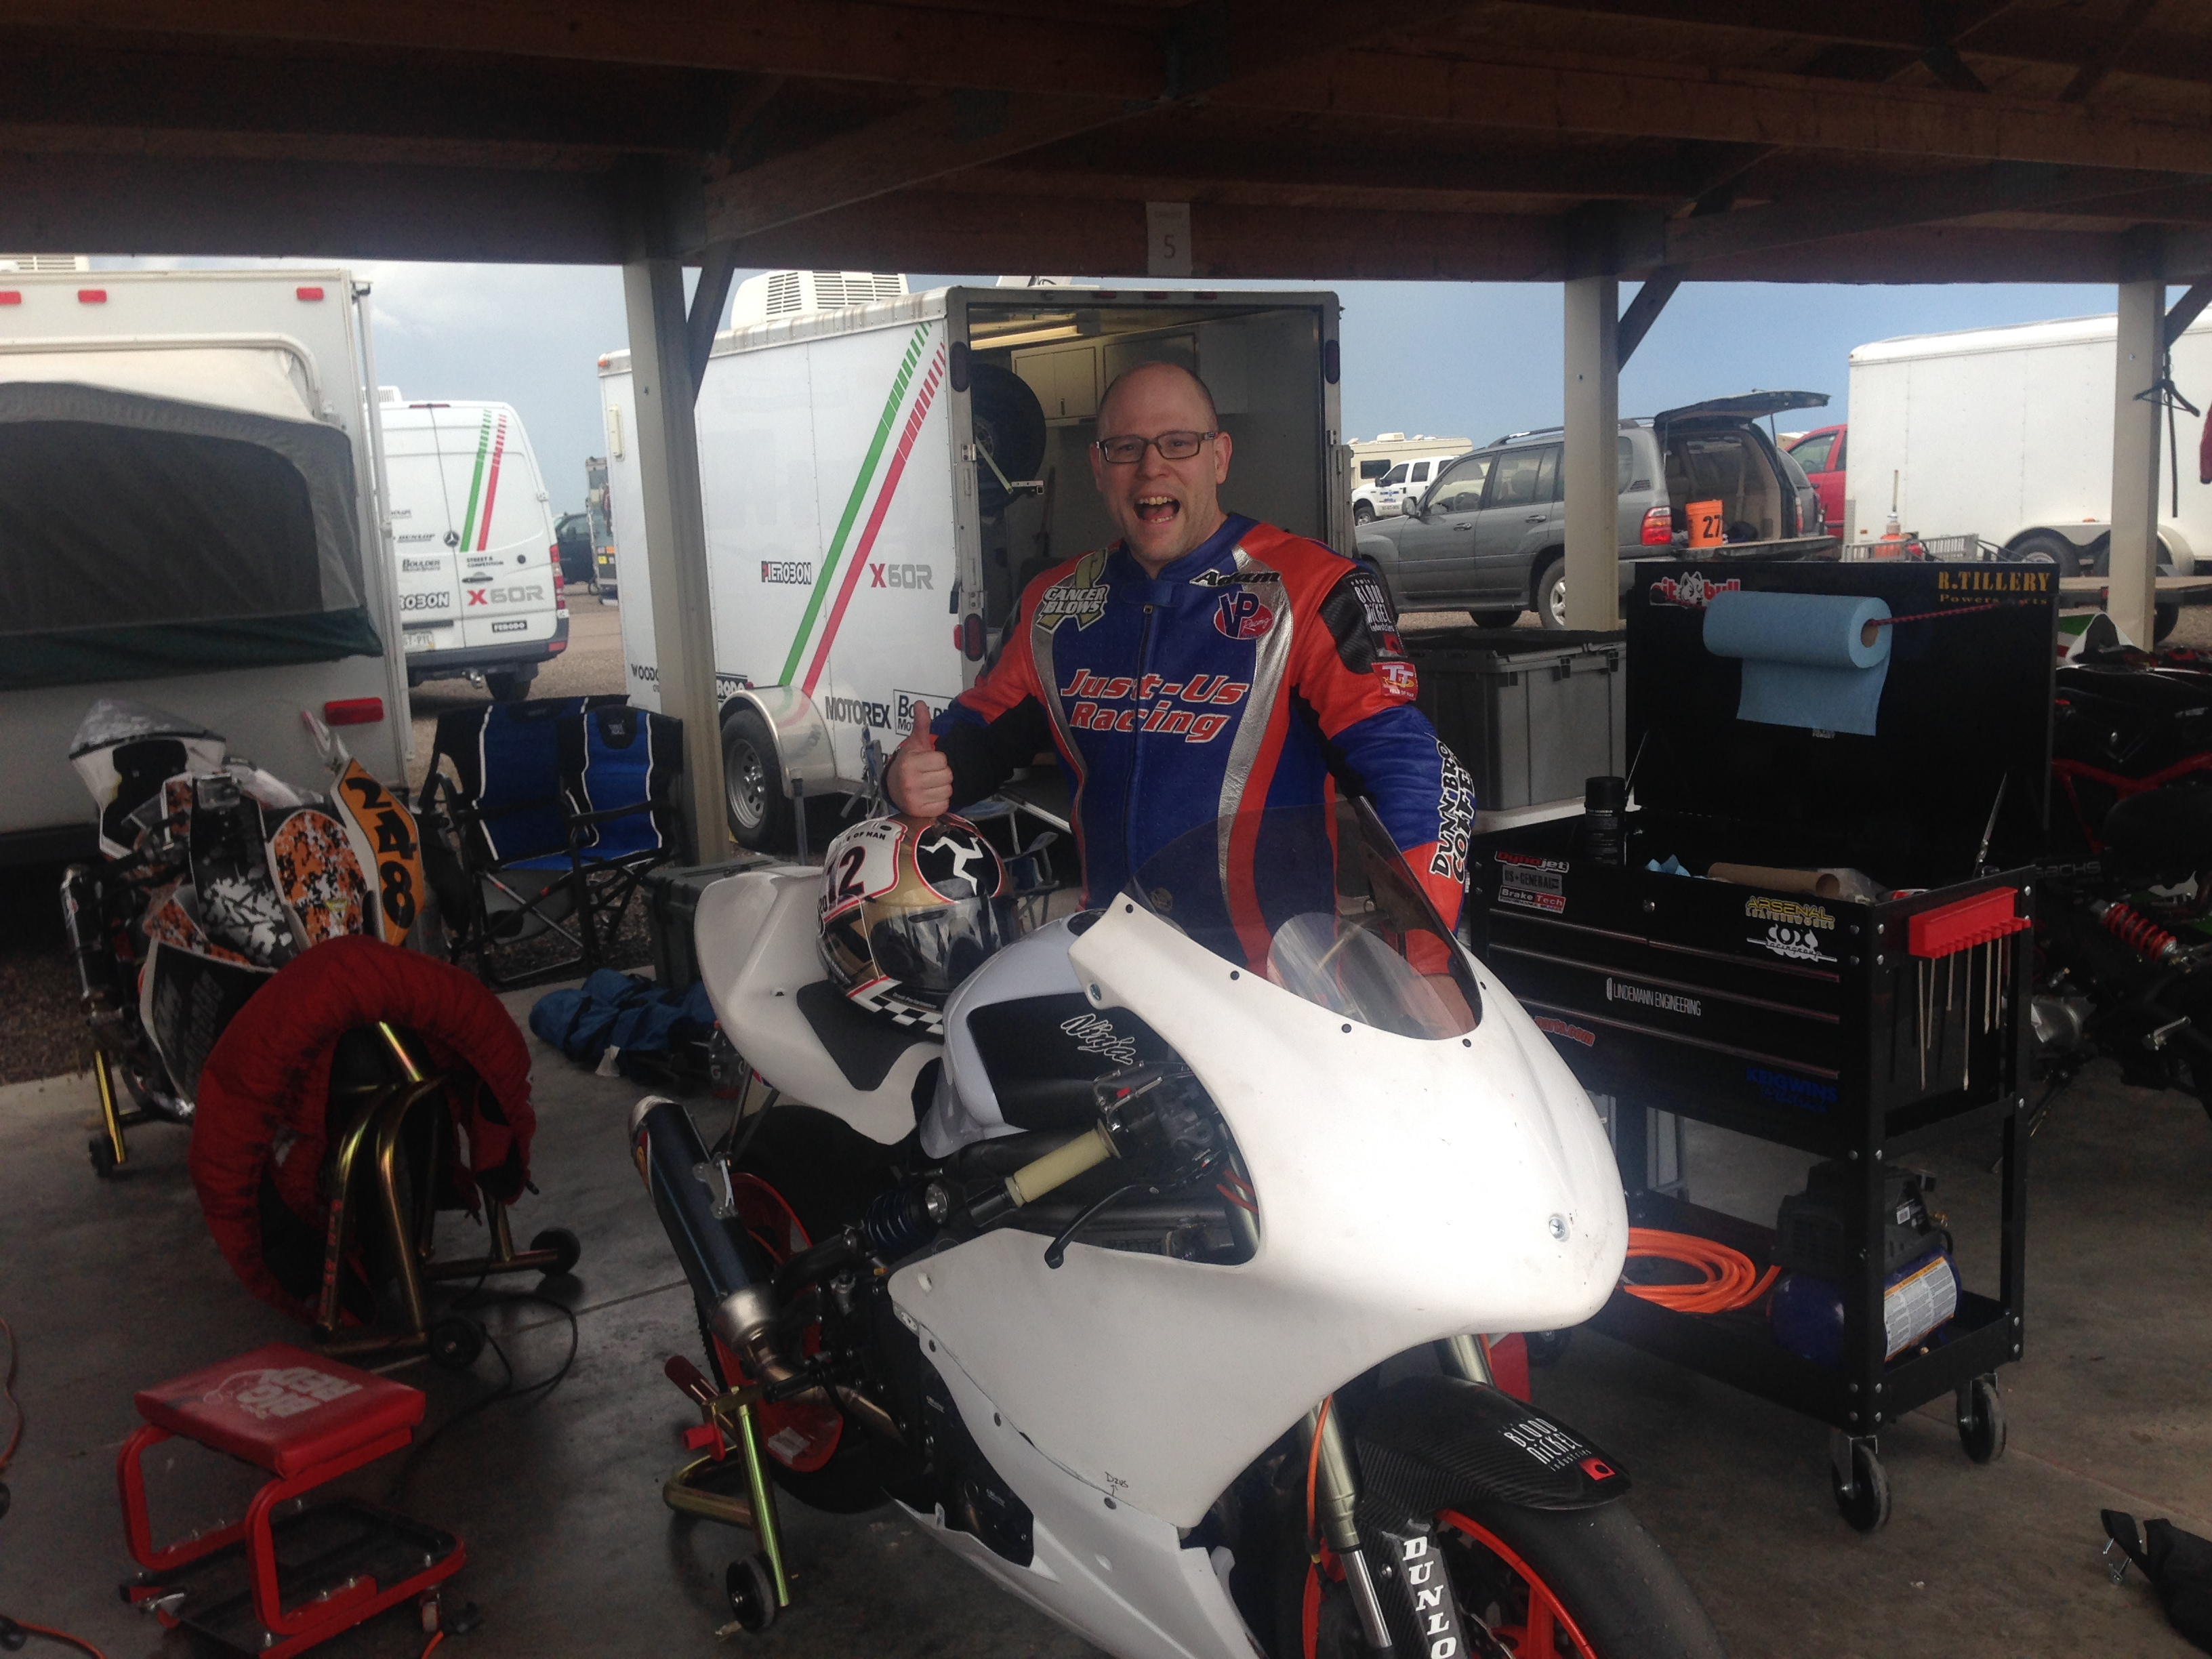 Successful first day on the new Supertwin!